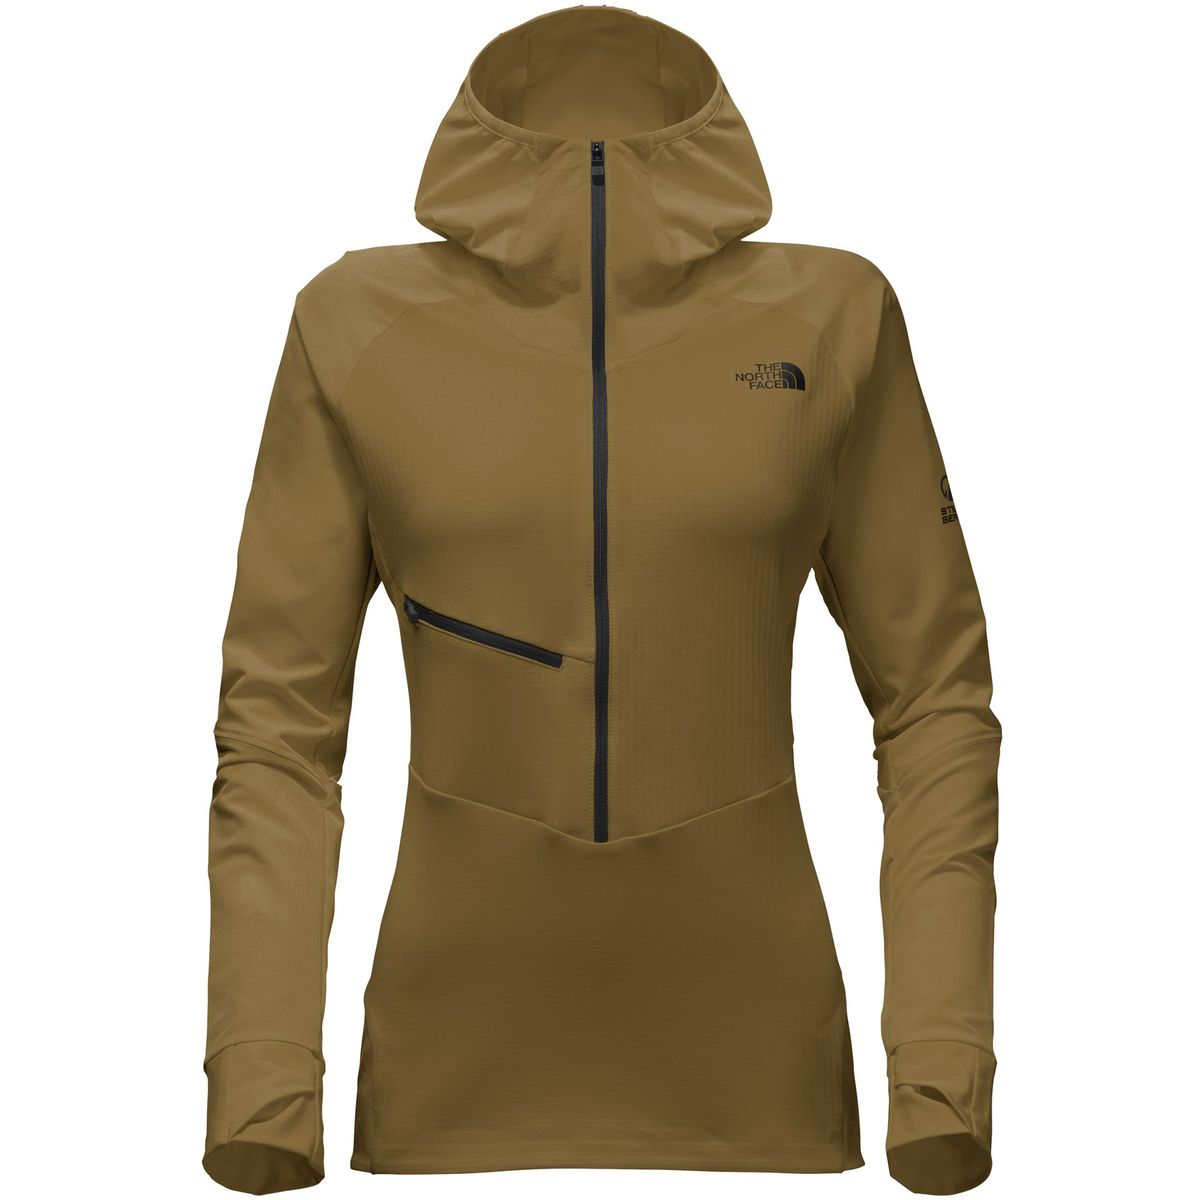 The North Face Respirator Fleece Women's Jacket